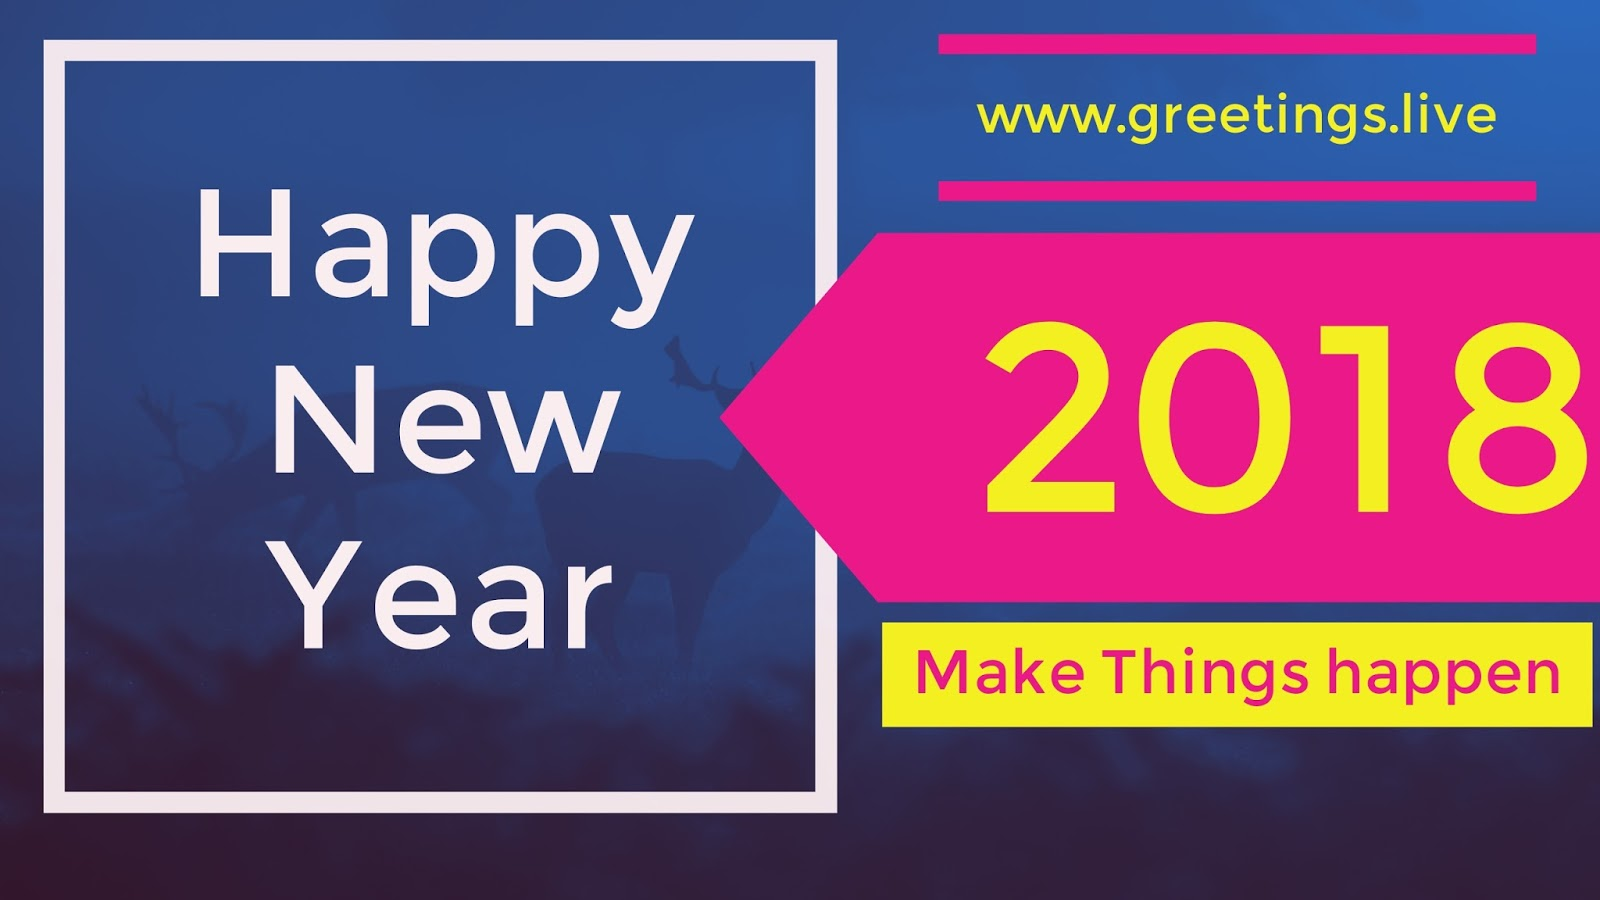 Telugu picture messages creative happy new year 2018 greeting cards creative happy new year 2018 greeting cards from greetingsve m4hsunfo